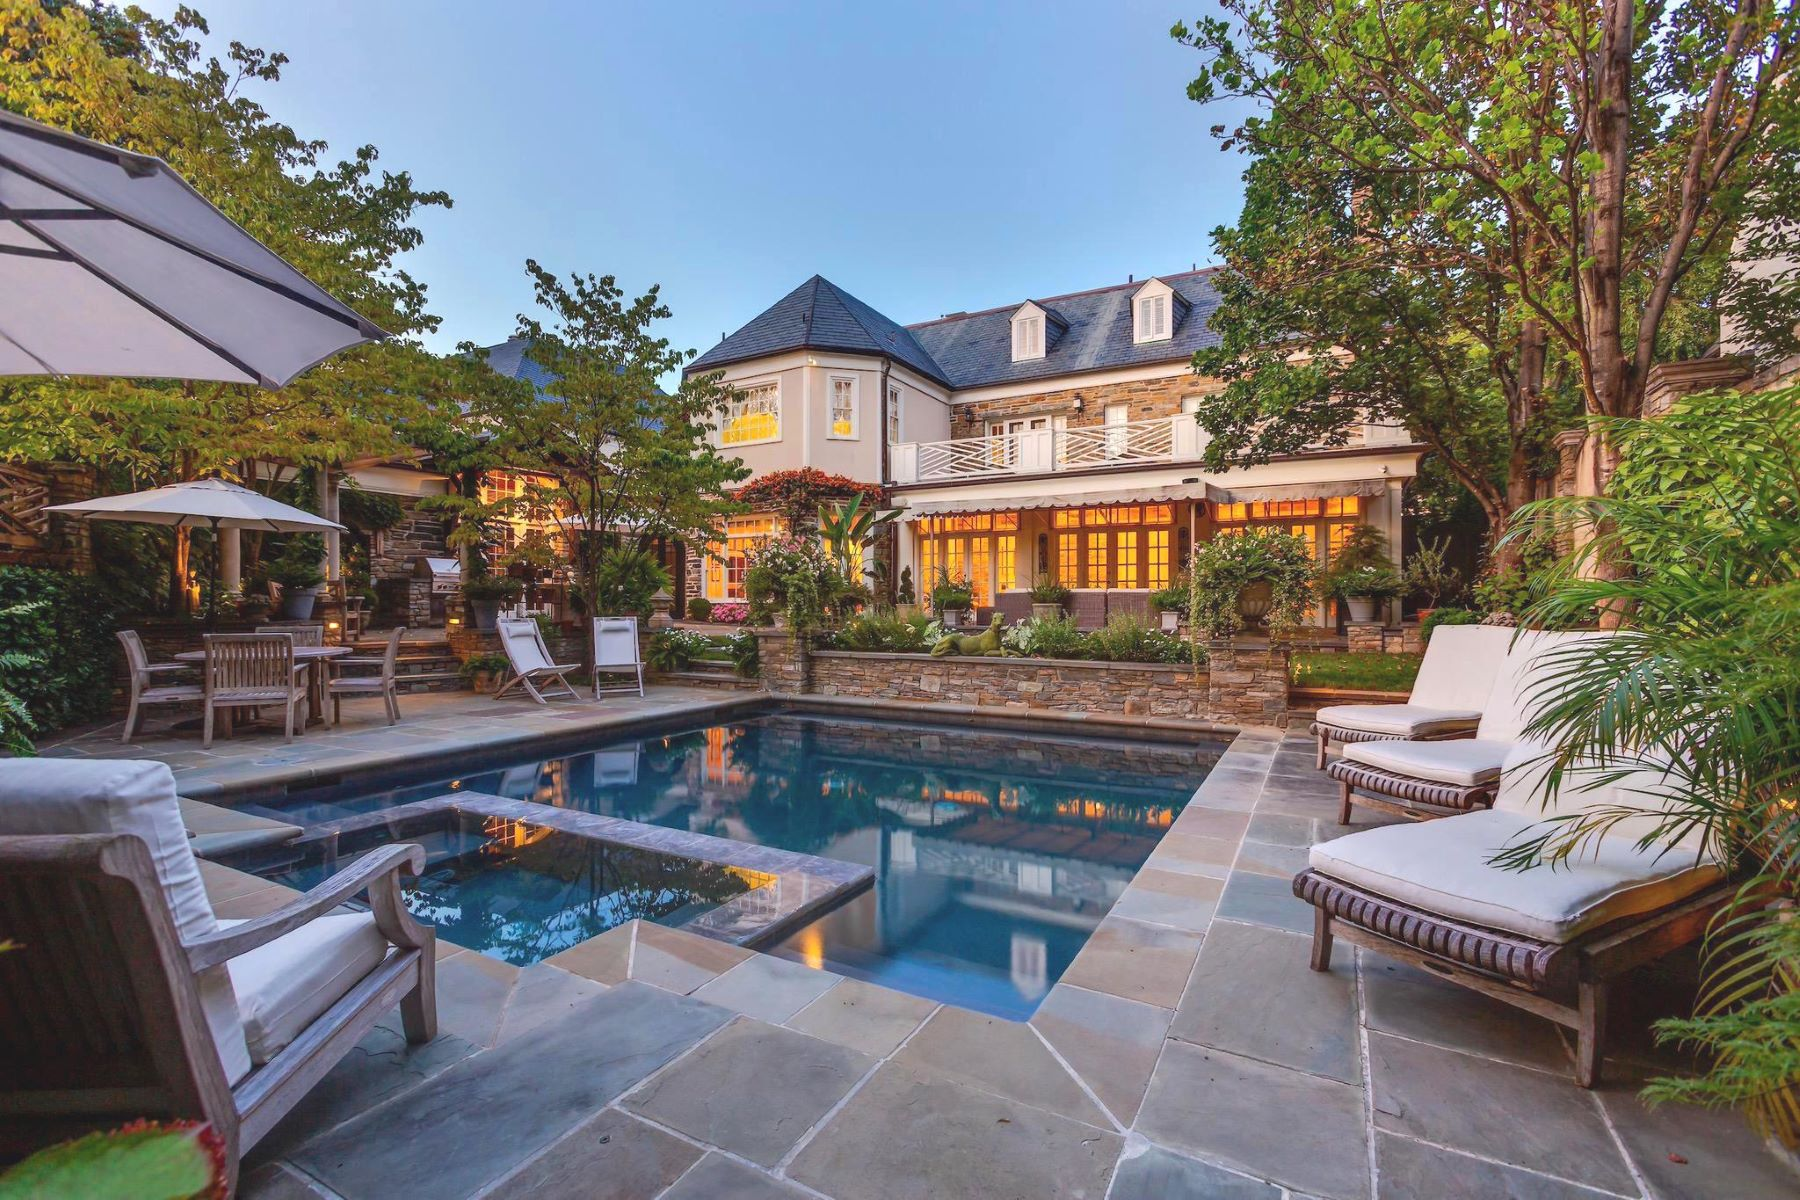 Single Family Homes for Sale at 2848 Mcgill Ter Nw Washington, District Of Columbia 20008 United States